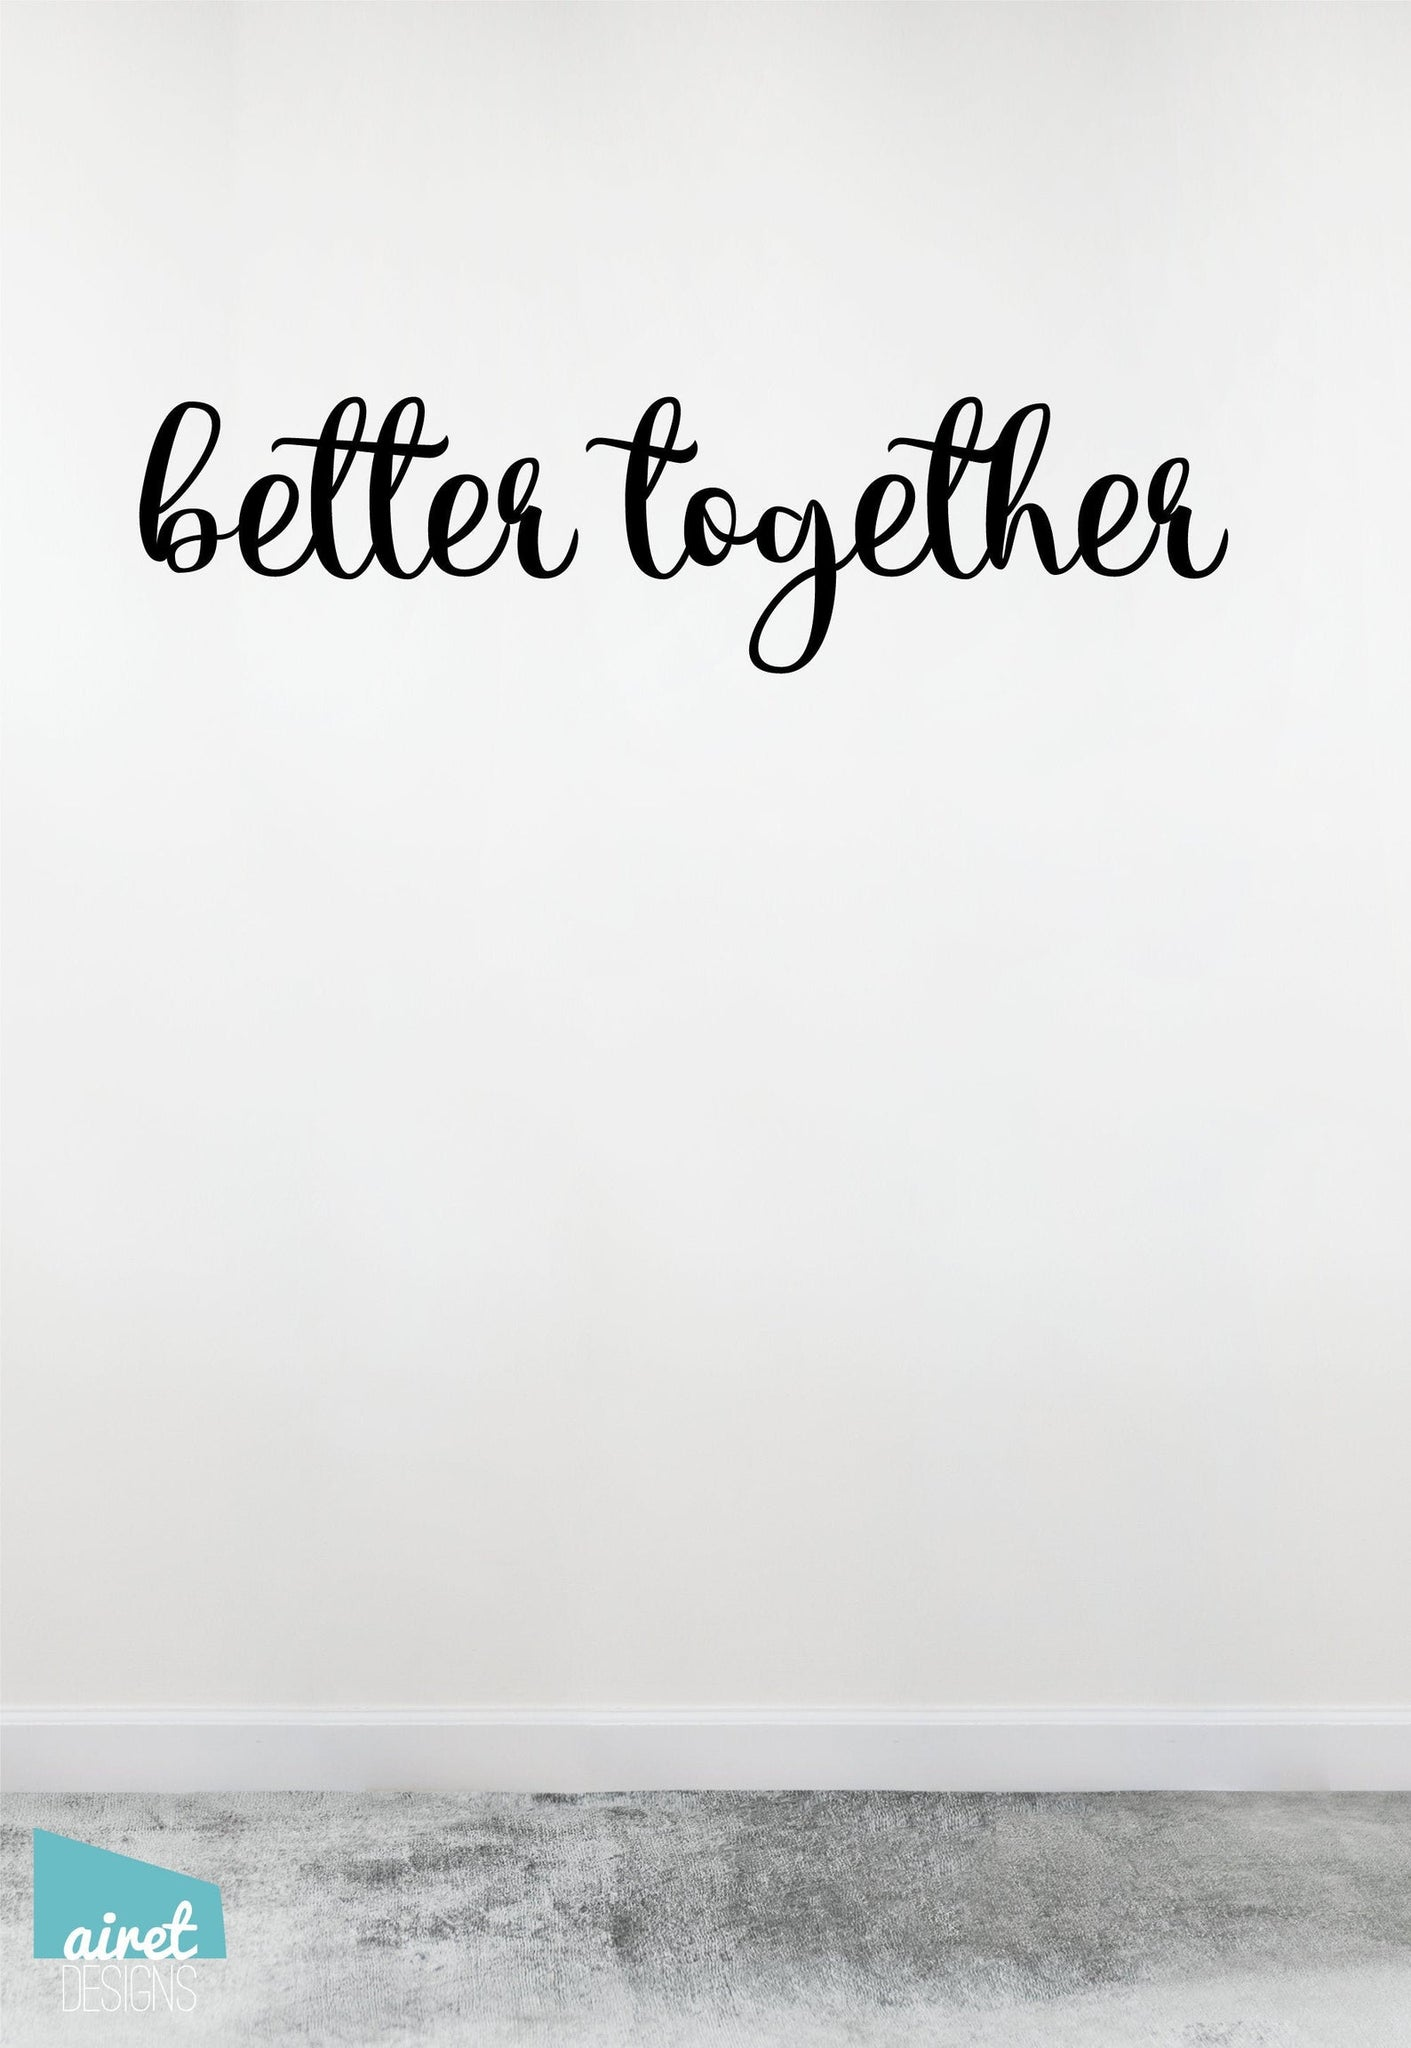 Better Together - Vinyl Decal Lettering Quote Marriage Couple Wedding Love Wall Decor Sticker home sign v4